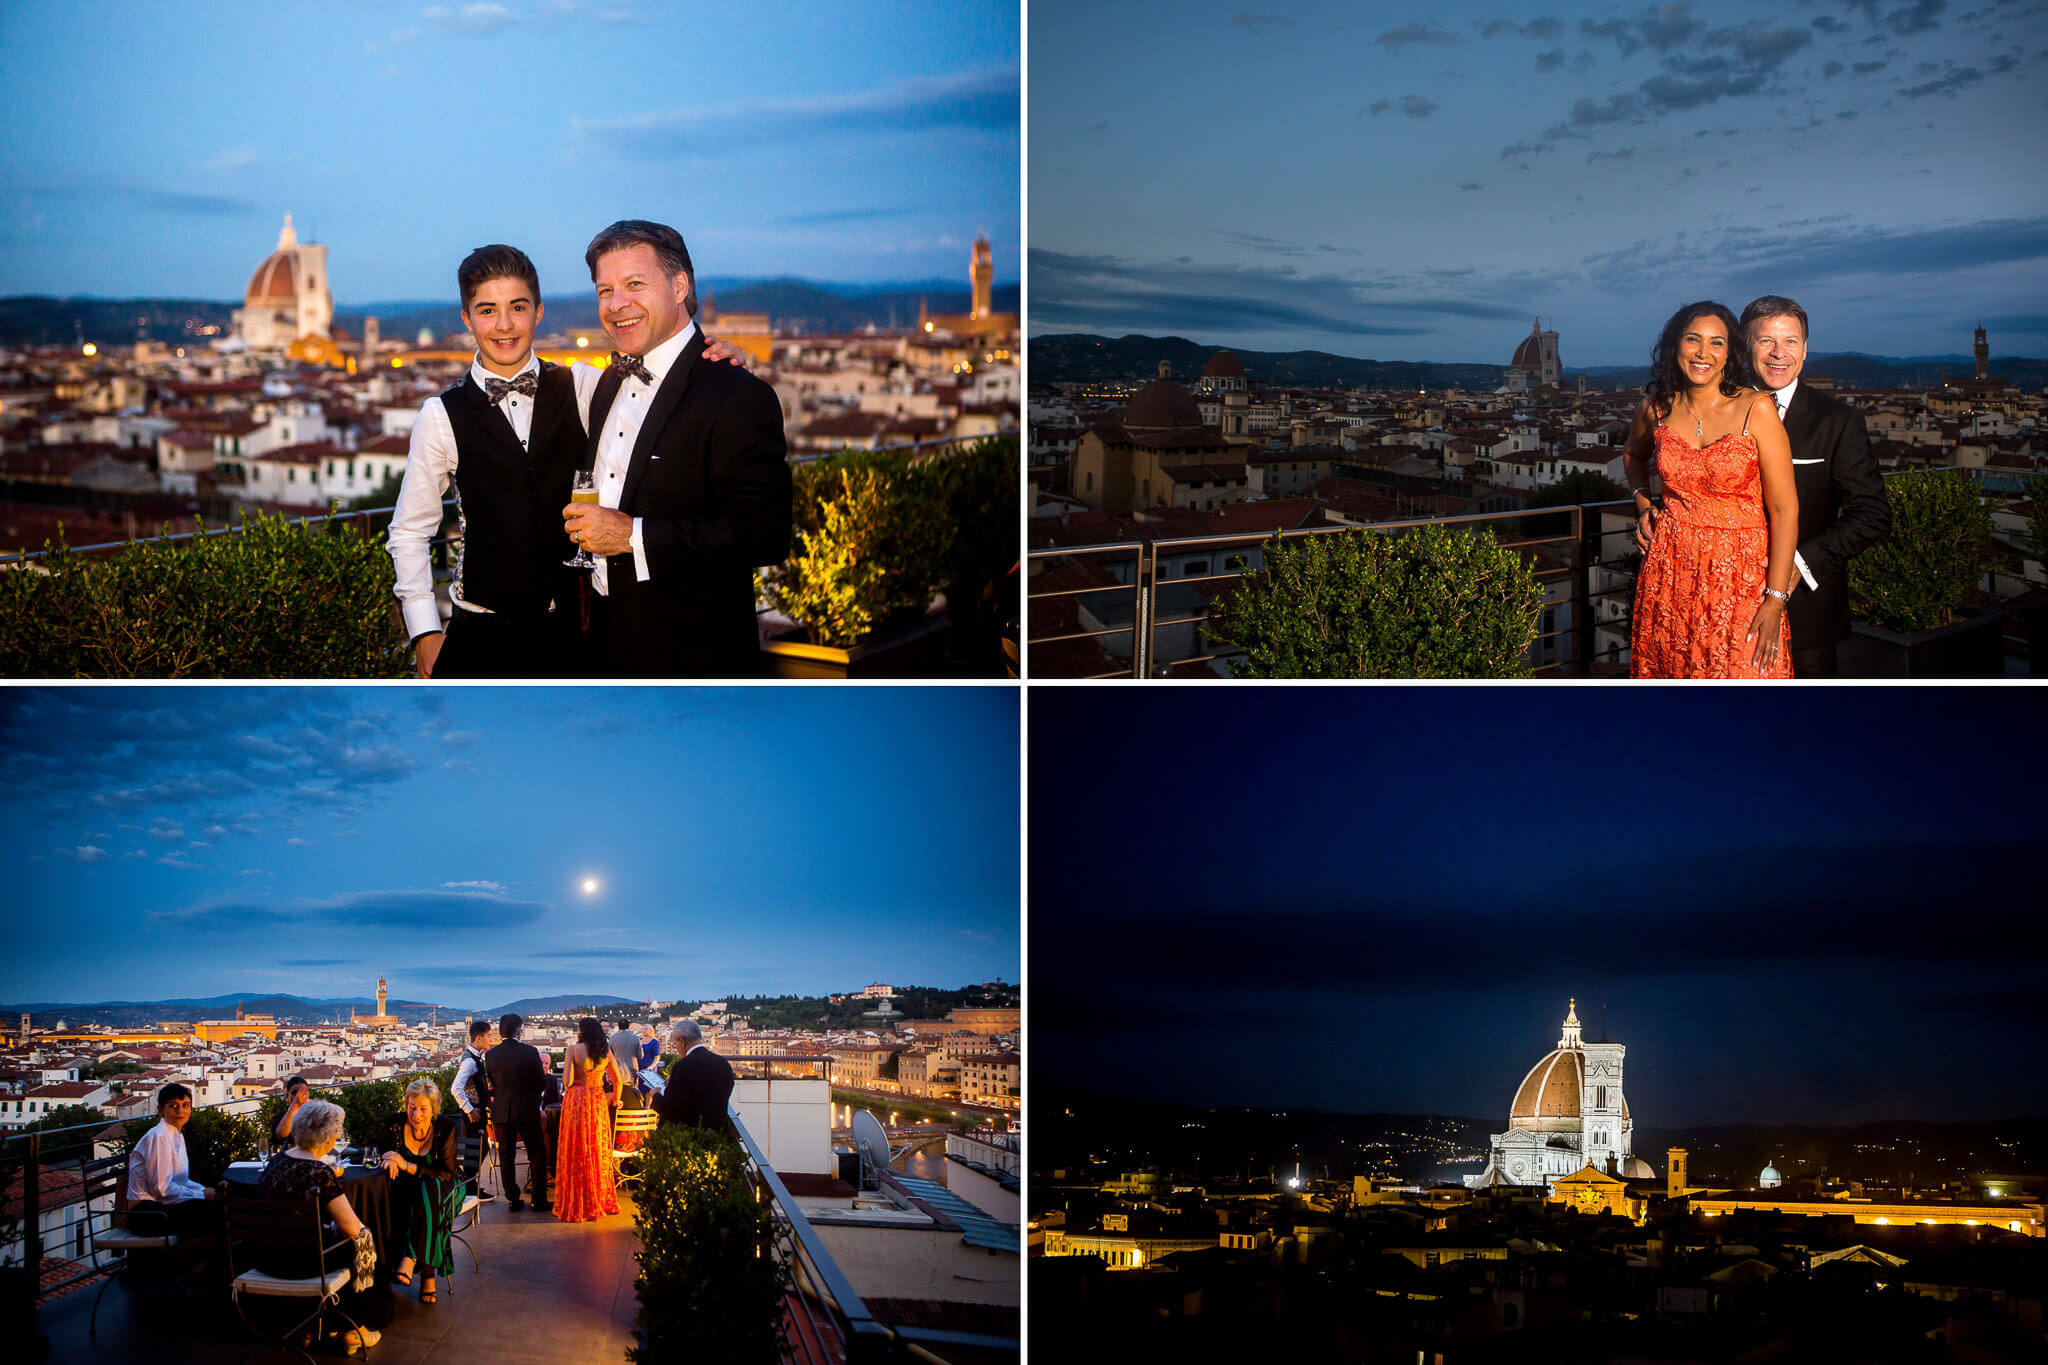 florence-villa-cora-destination-wedding-photographers-stanbury-photography